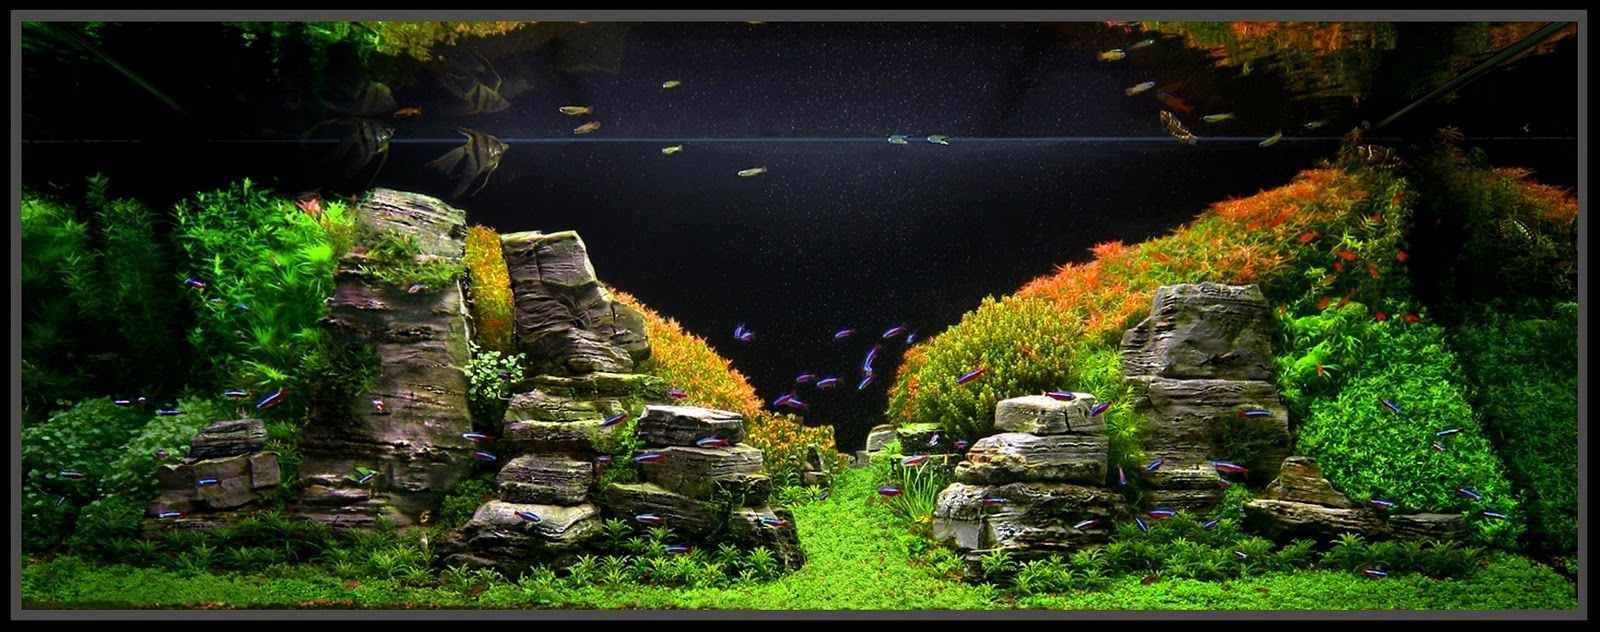 Master Guide To Aquascaping Part 2 Of 2   More Ideas For Your Planted Tank